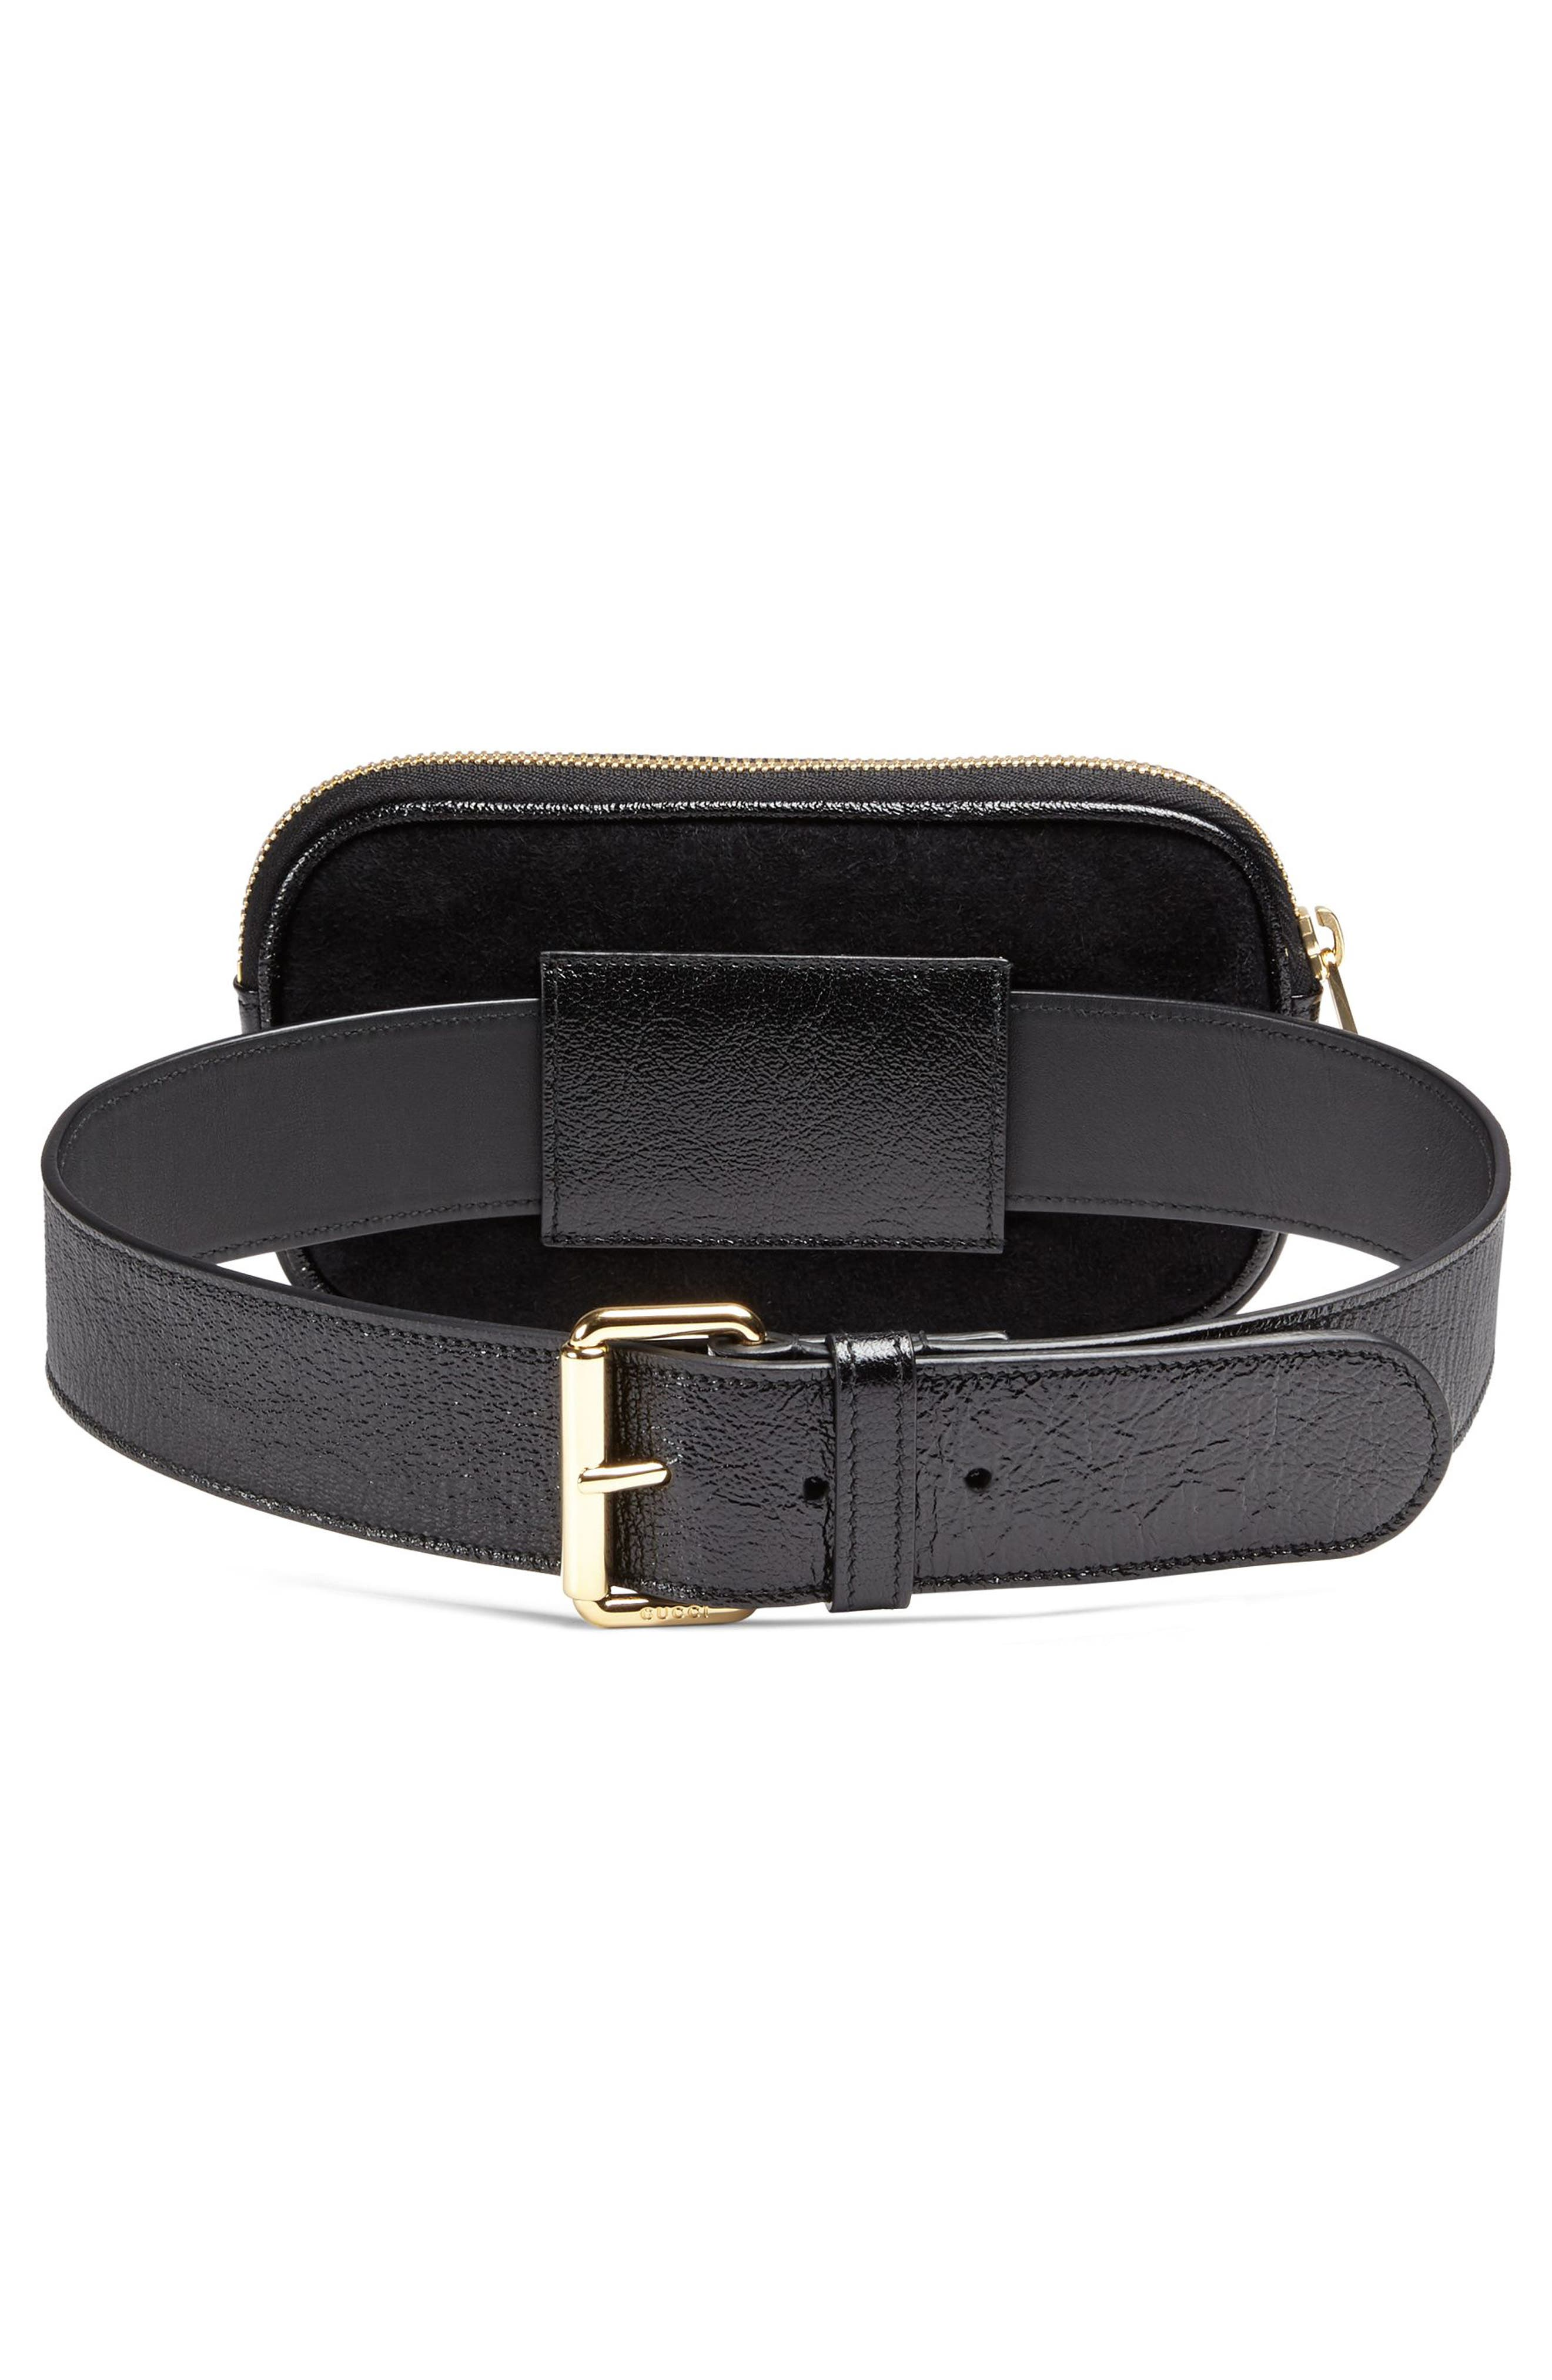 Ophidia Suede & Leather Belt Bag,                             Alternate thumbnail 2, color,                             NERO/ VERT/ RED